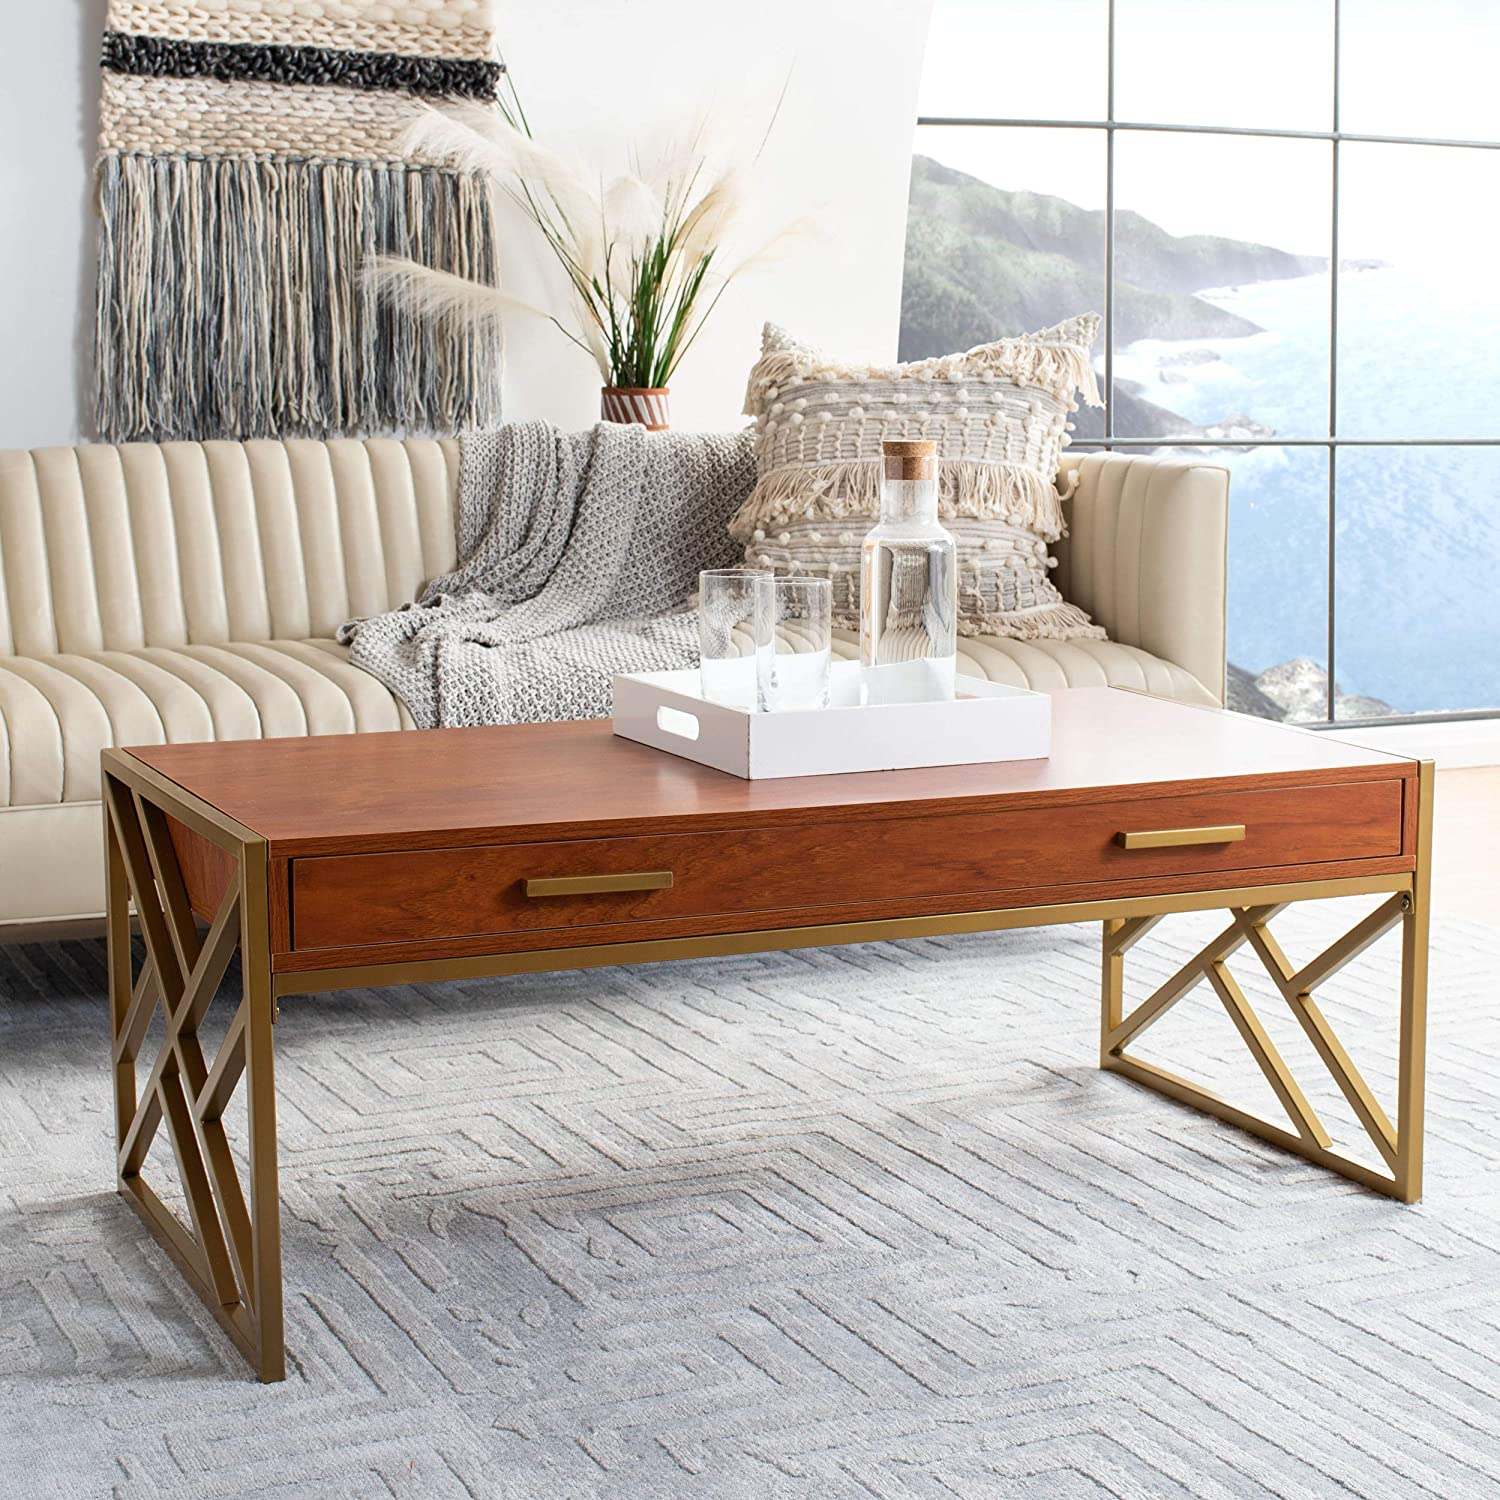 Safavieh Home Elaine Natural and Table San Antonio Mall Coffee Gold 2-drawer Limited price